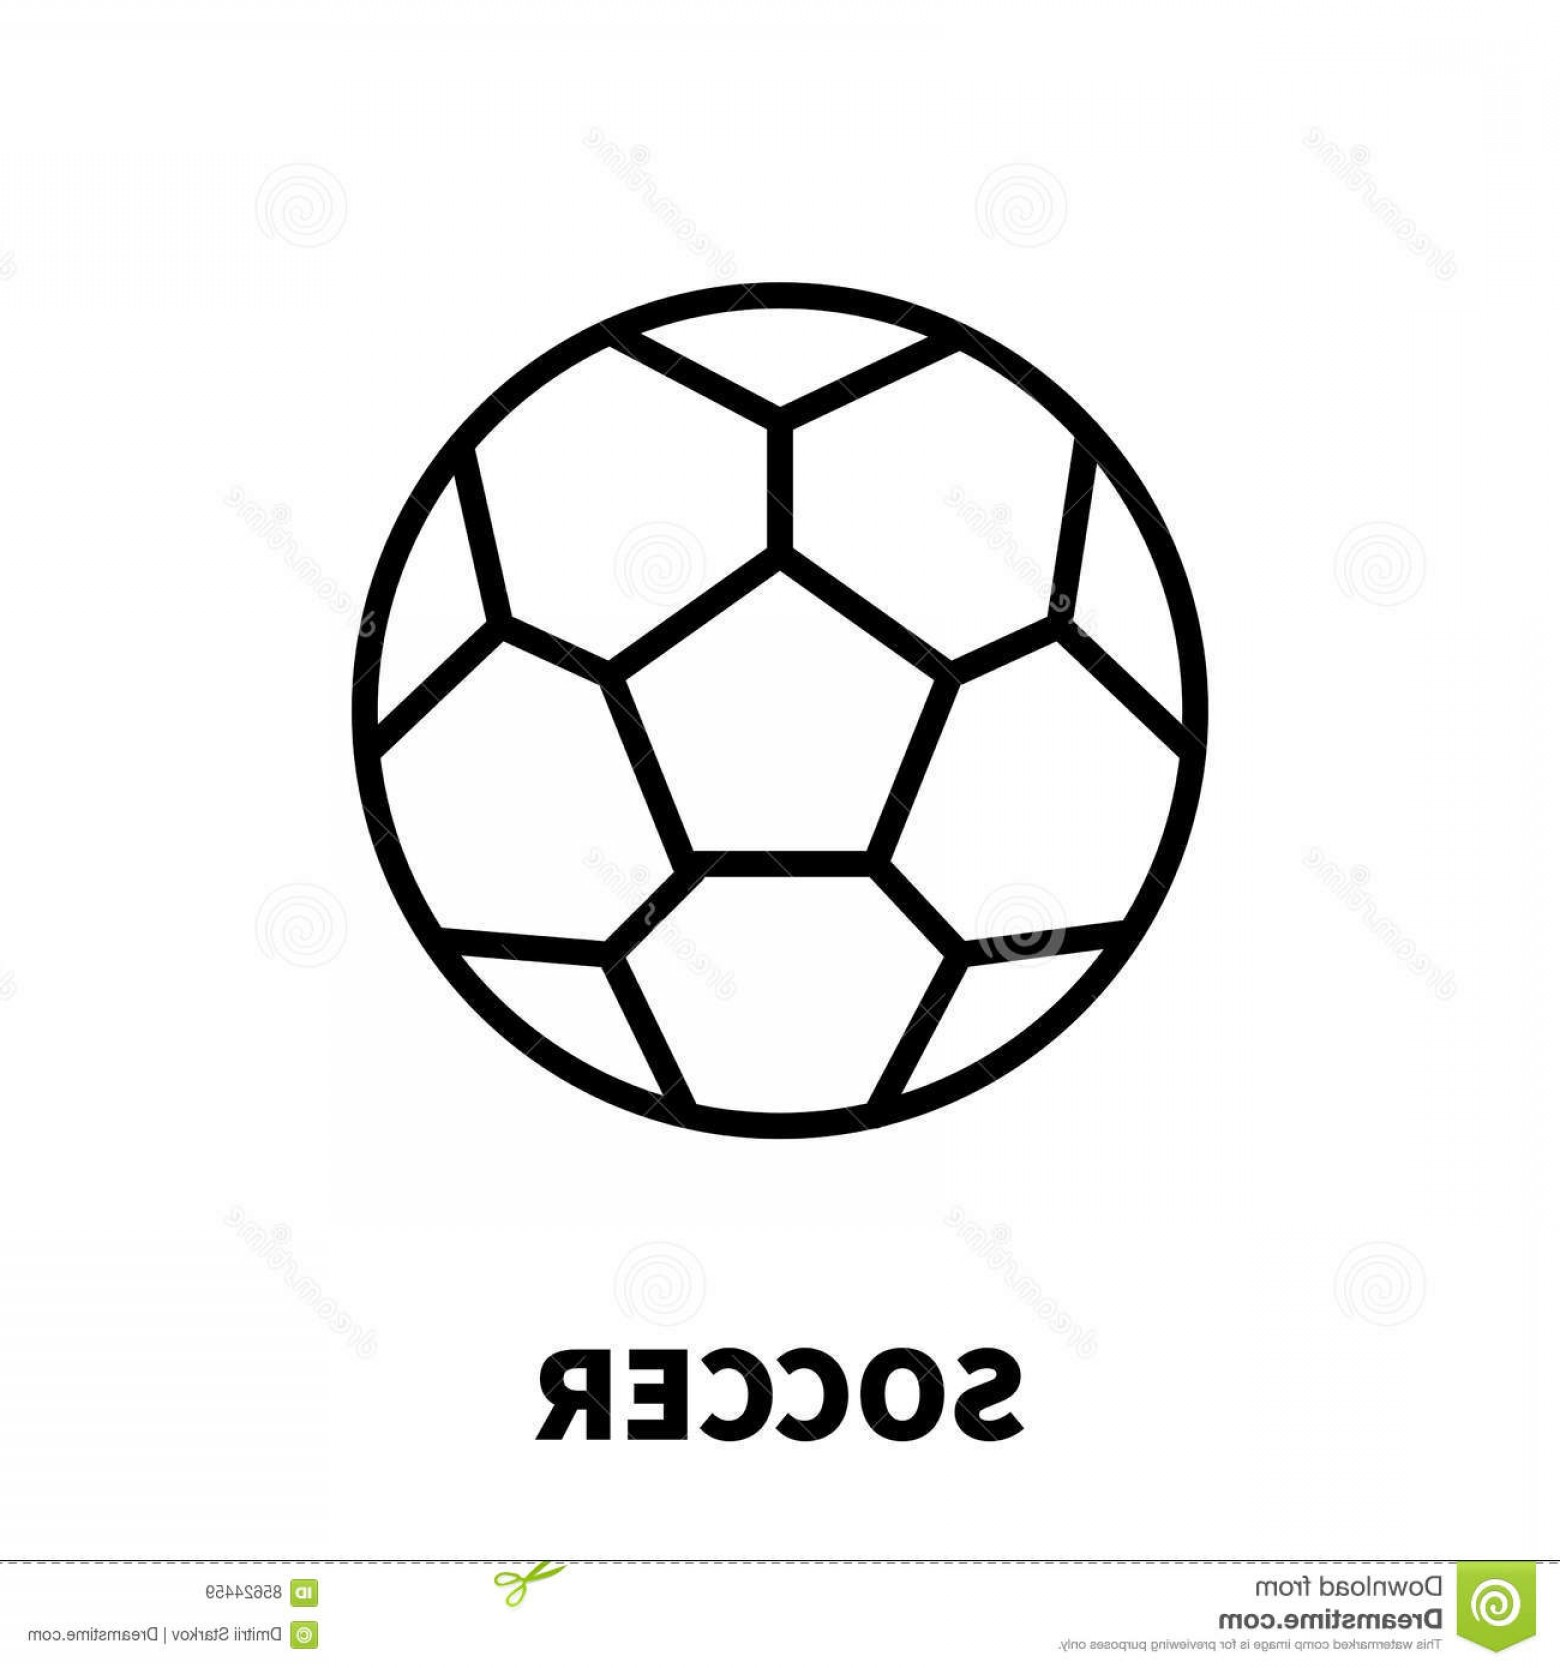 Abstract Football Vector Outline: Stock Illustration Soccer Icon Logo Modern Line Style High Quality Black Outline Pictogram Web Site Design Mobile Apps Vector Image